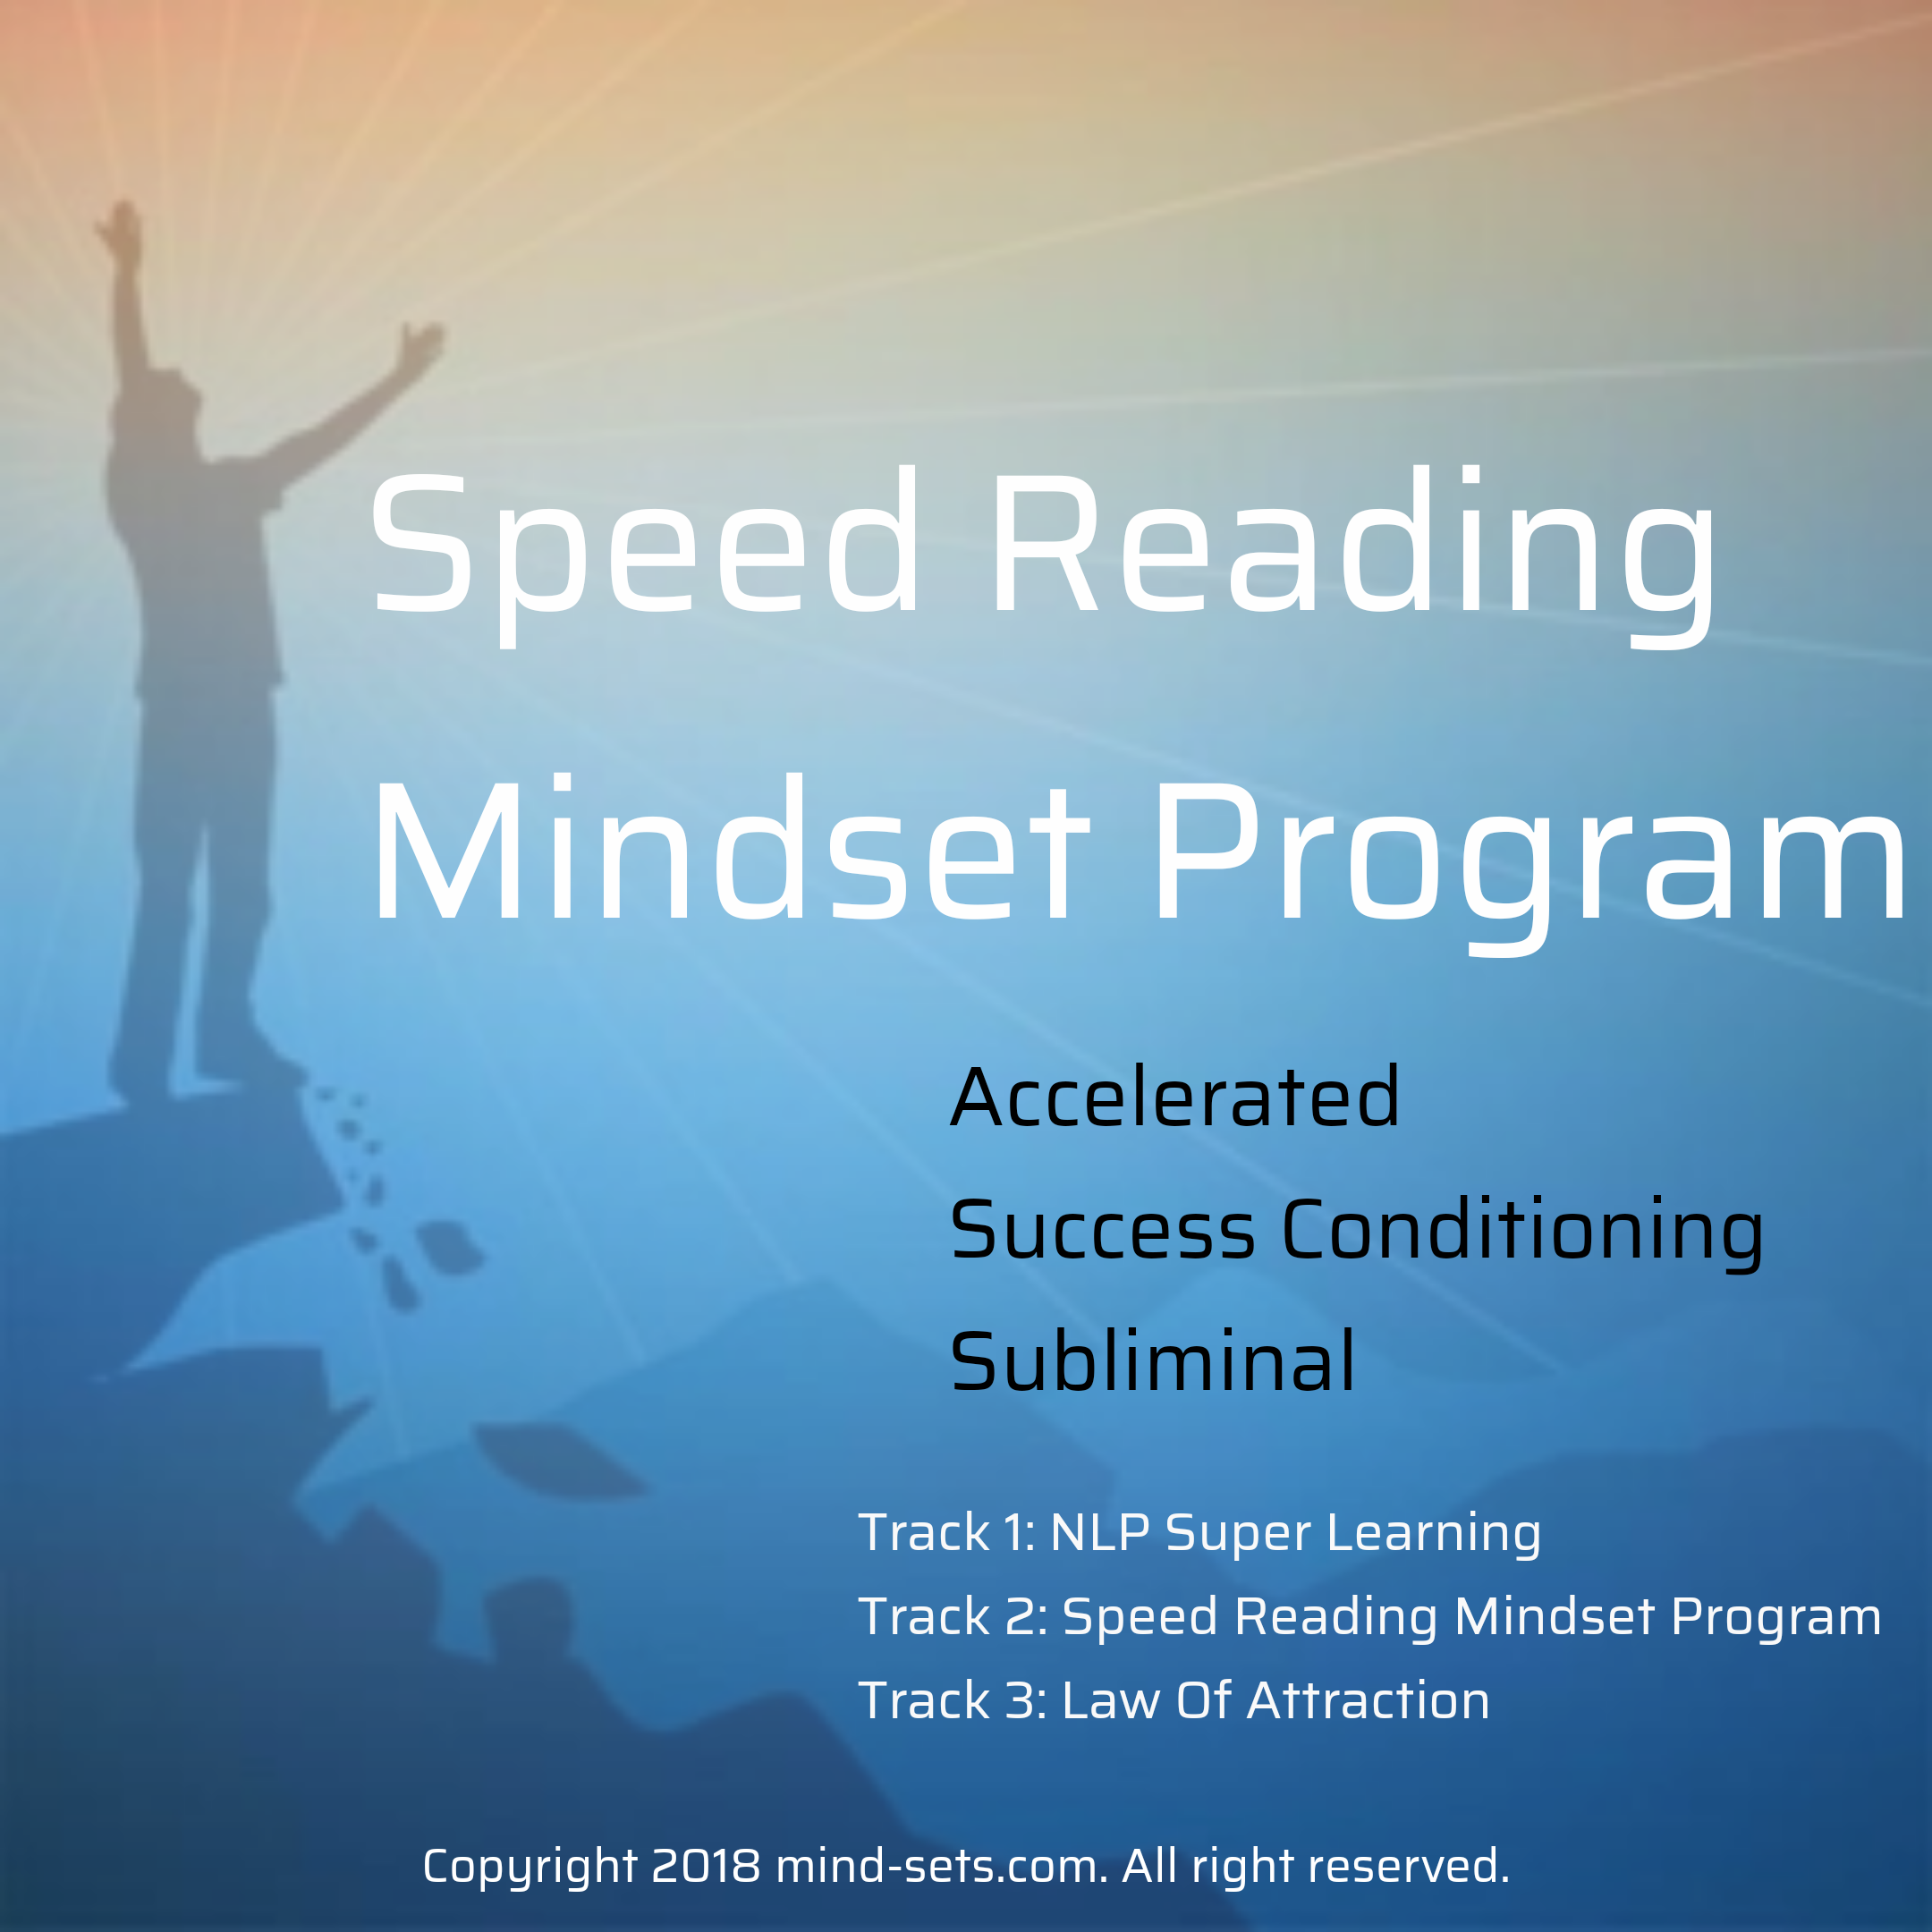 Speed Reading Mindset Program